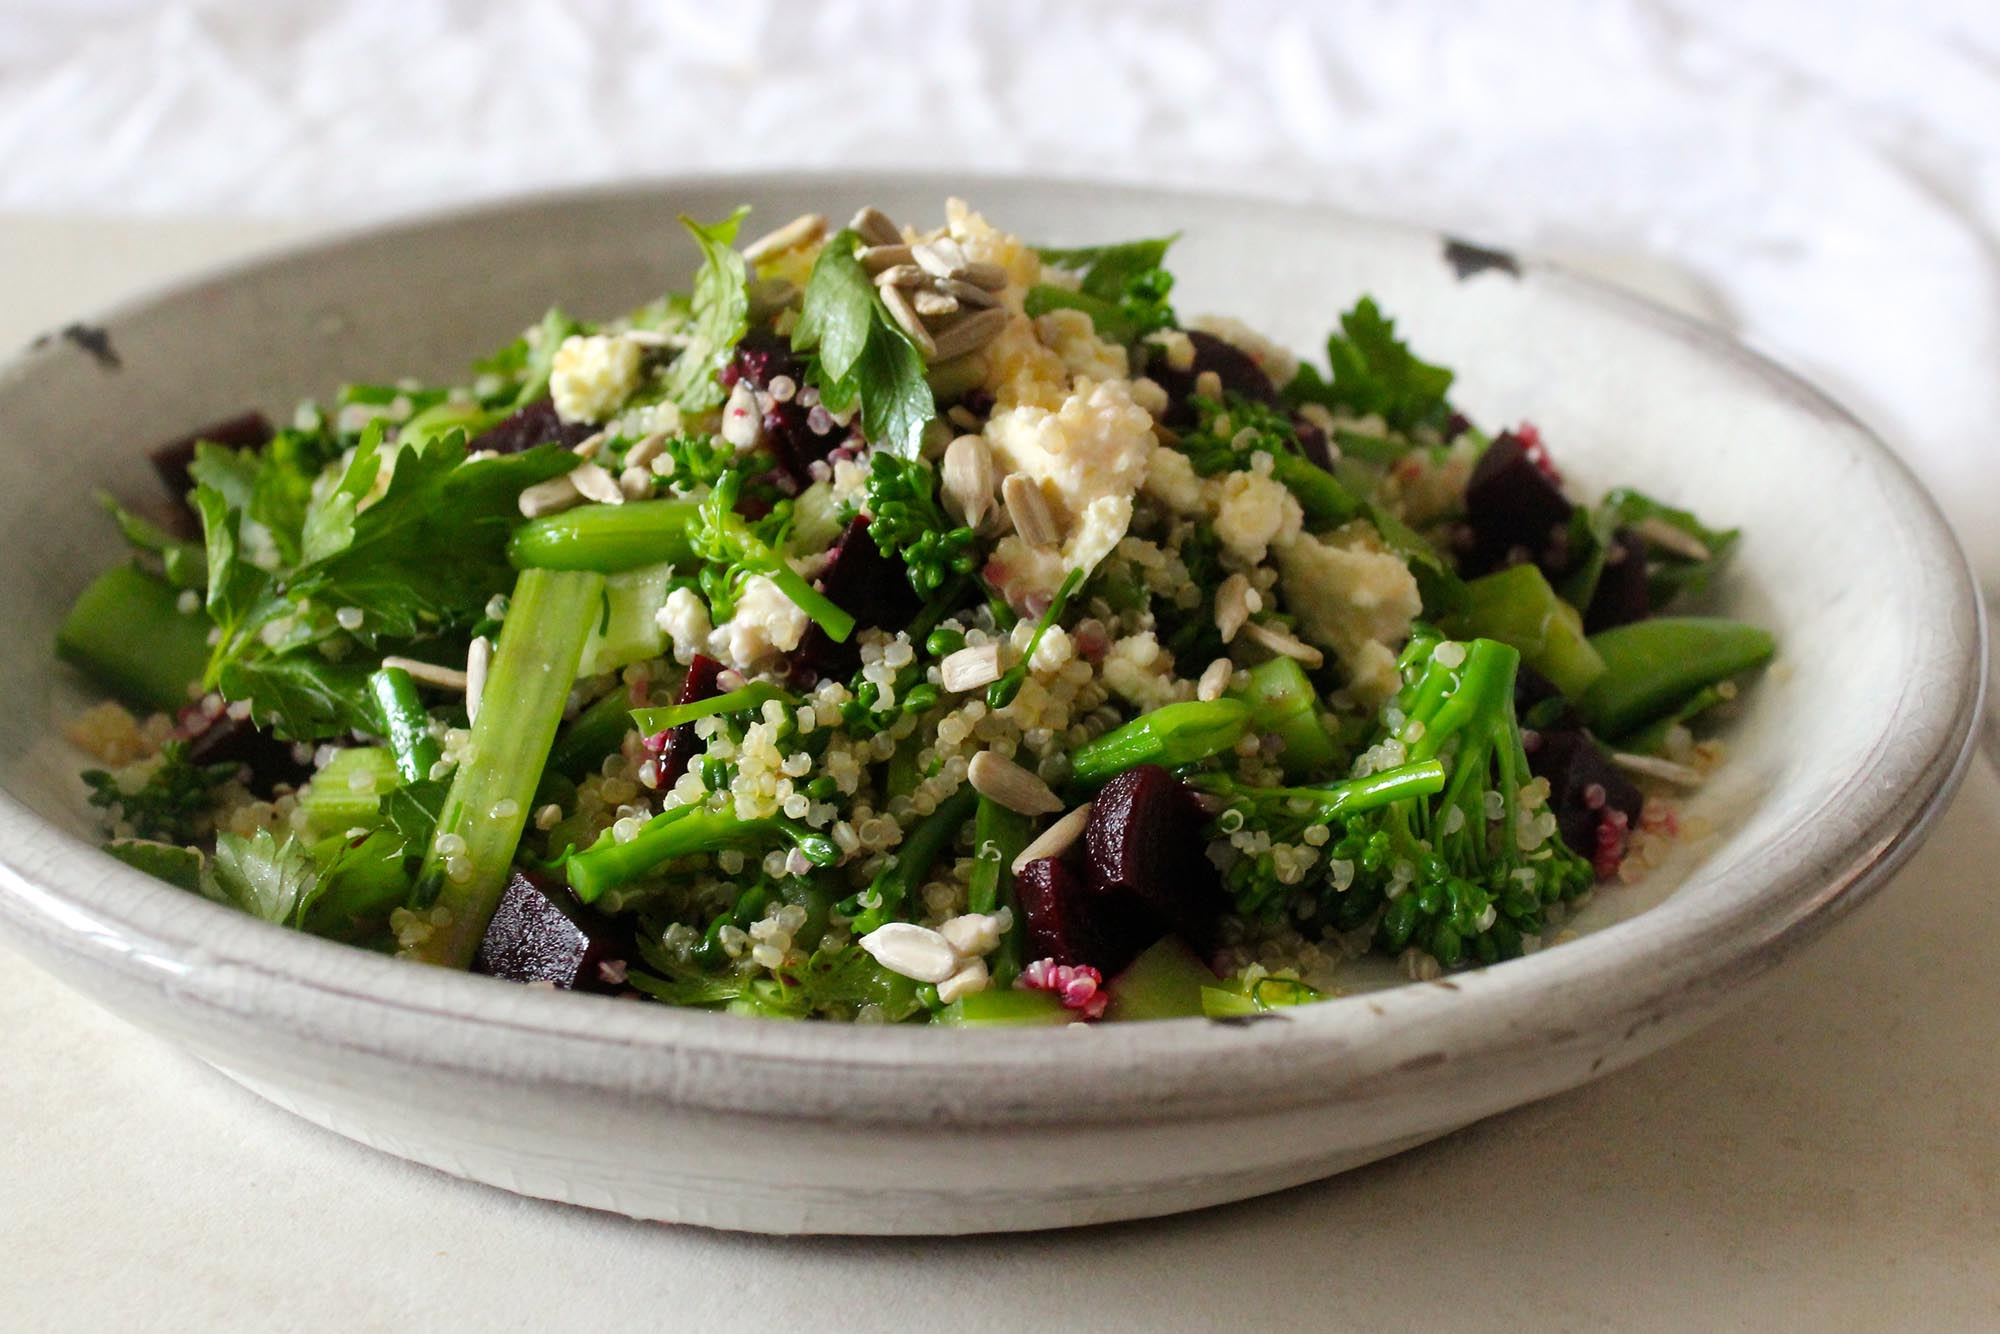 chrissy freer byron bay nutritionist quinoa salad